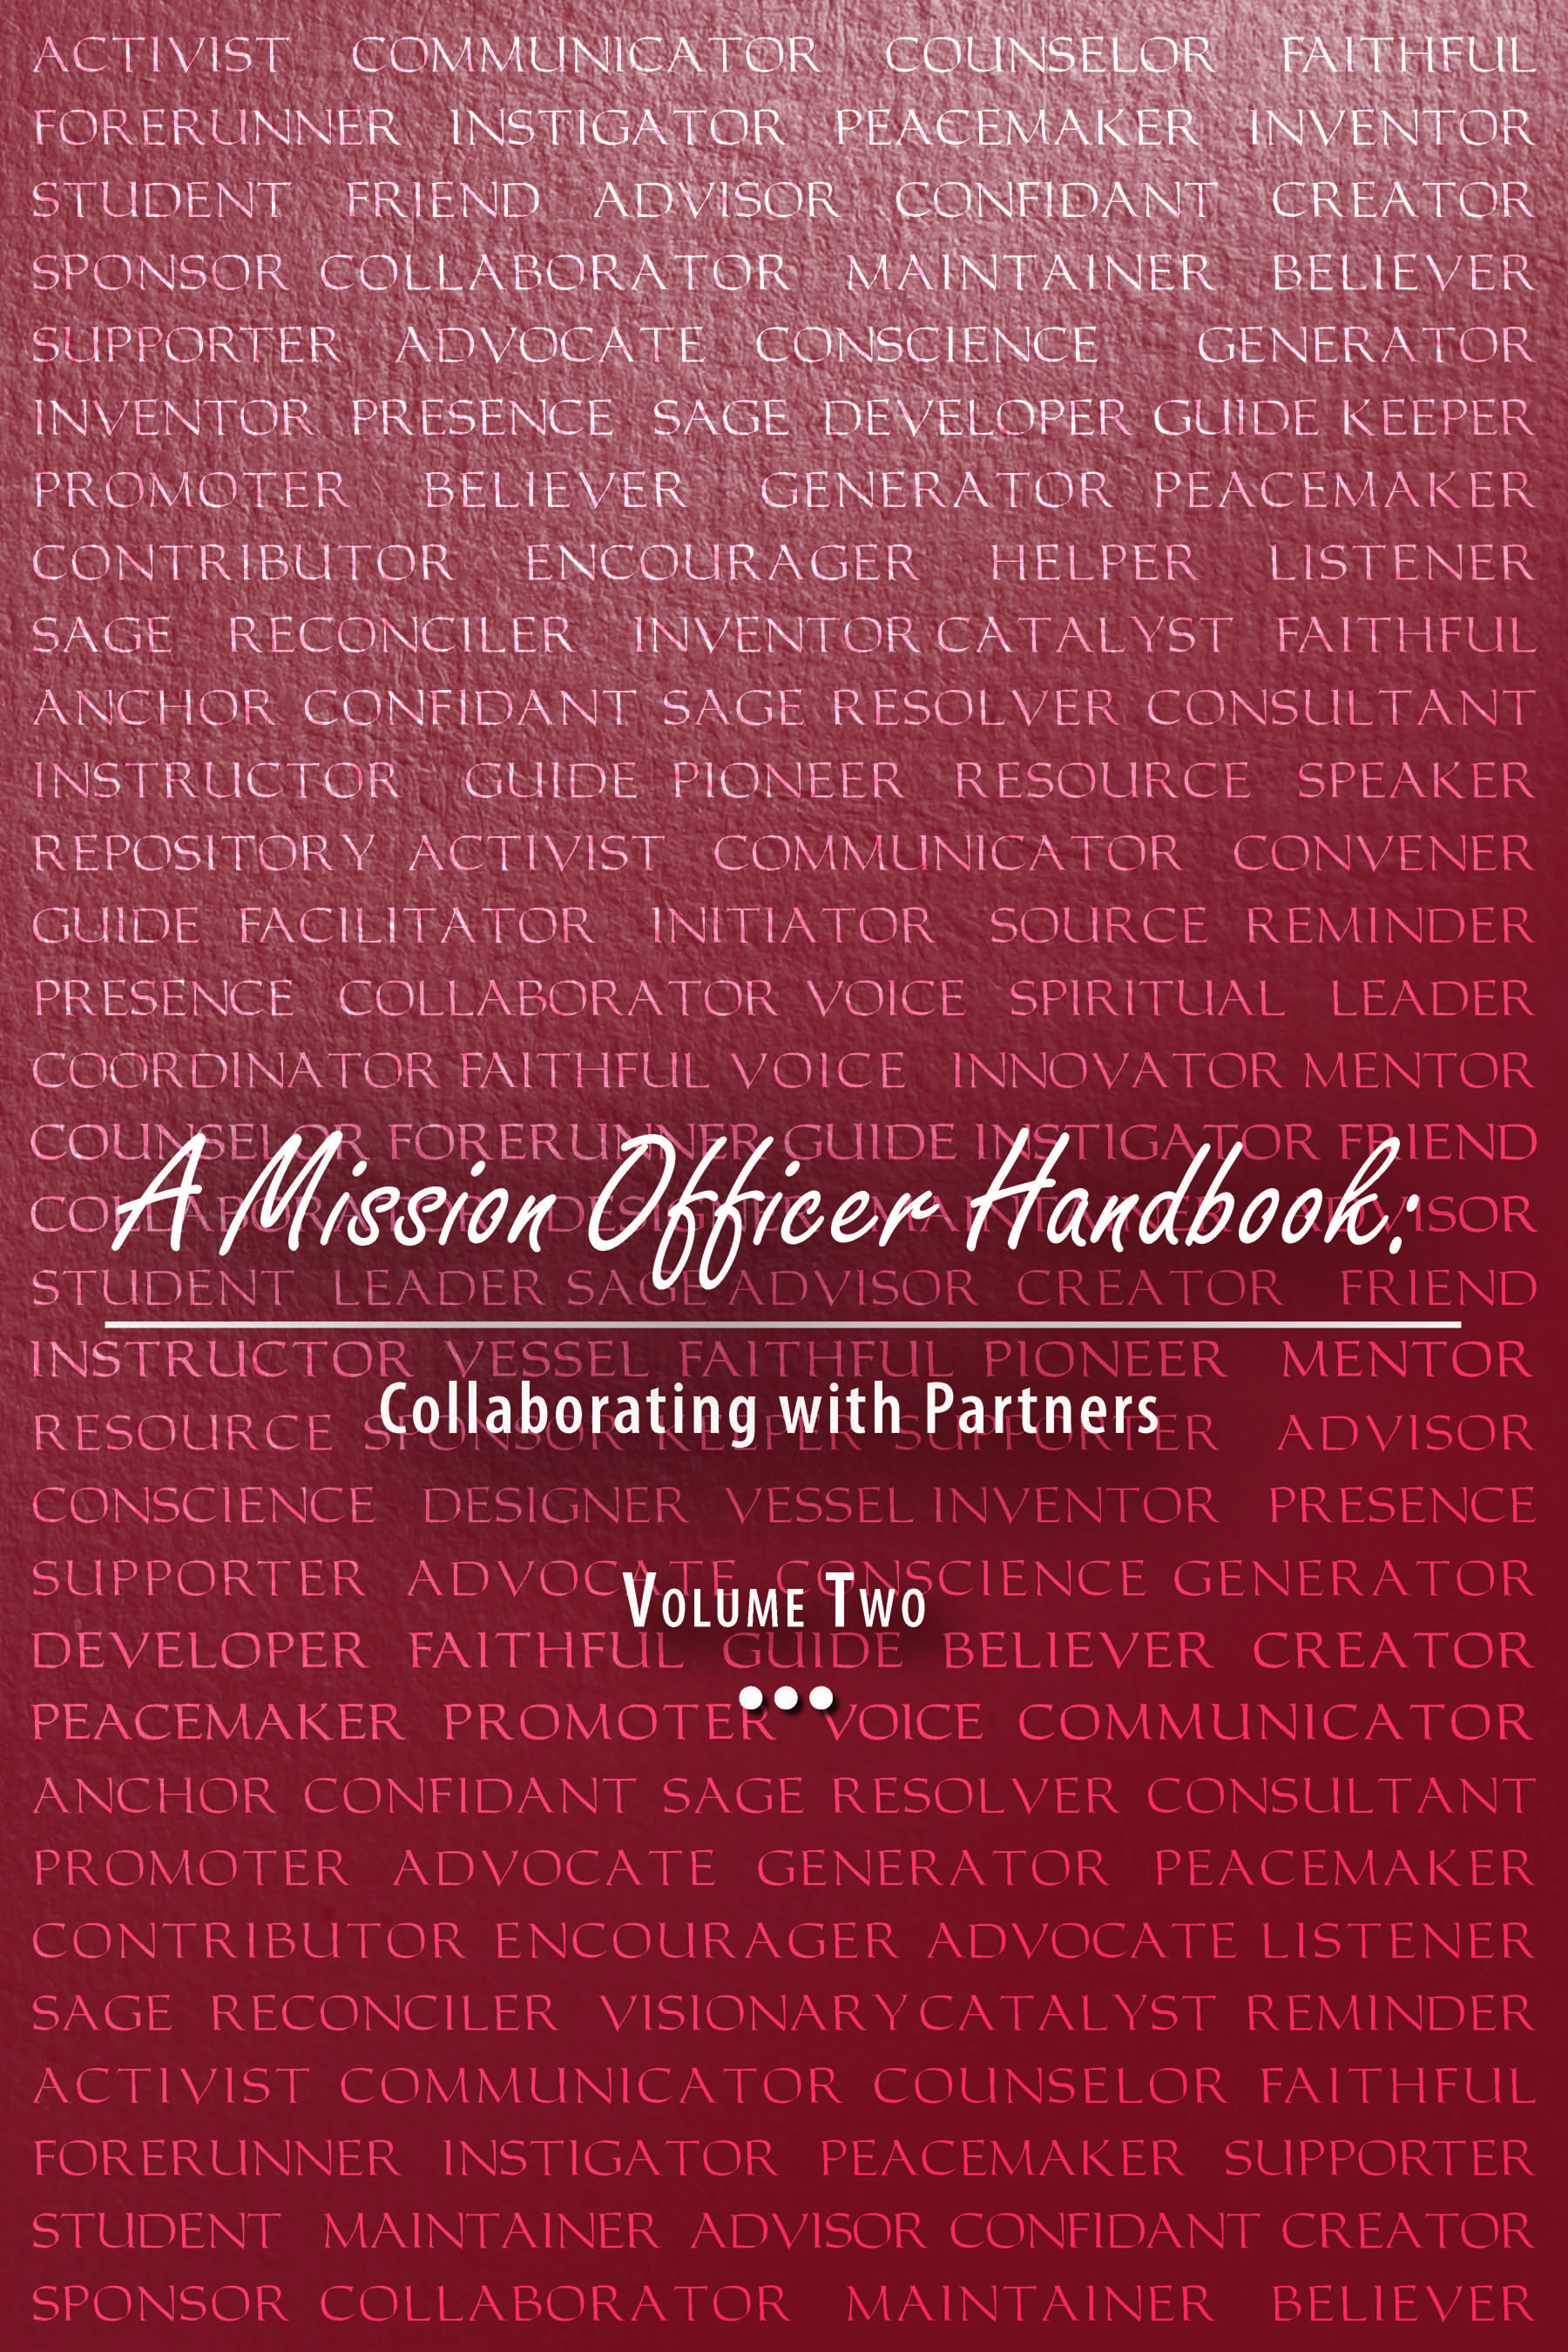 A Mission Officer Handbook, Vol. 2